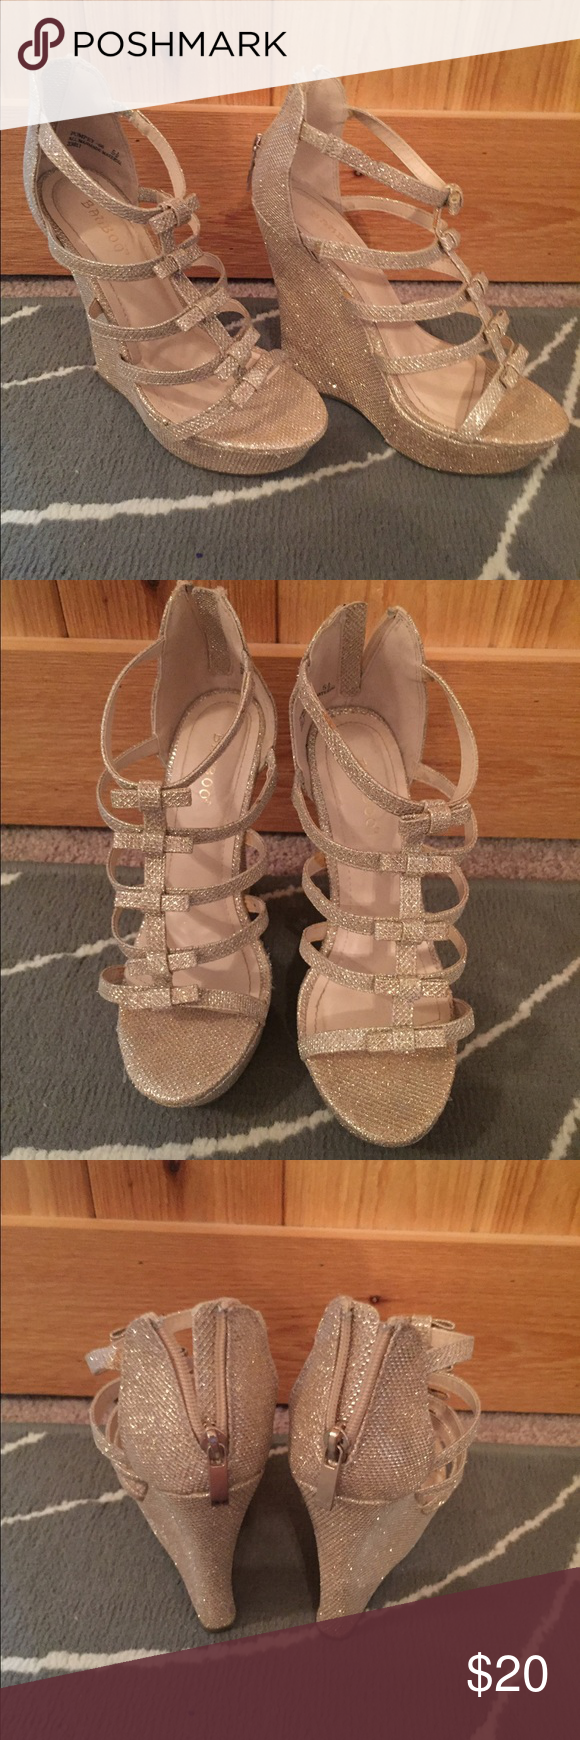 Gold glitter wedges NWOT Strappy gold glitter wedges | zipper back Shoes Wedges